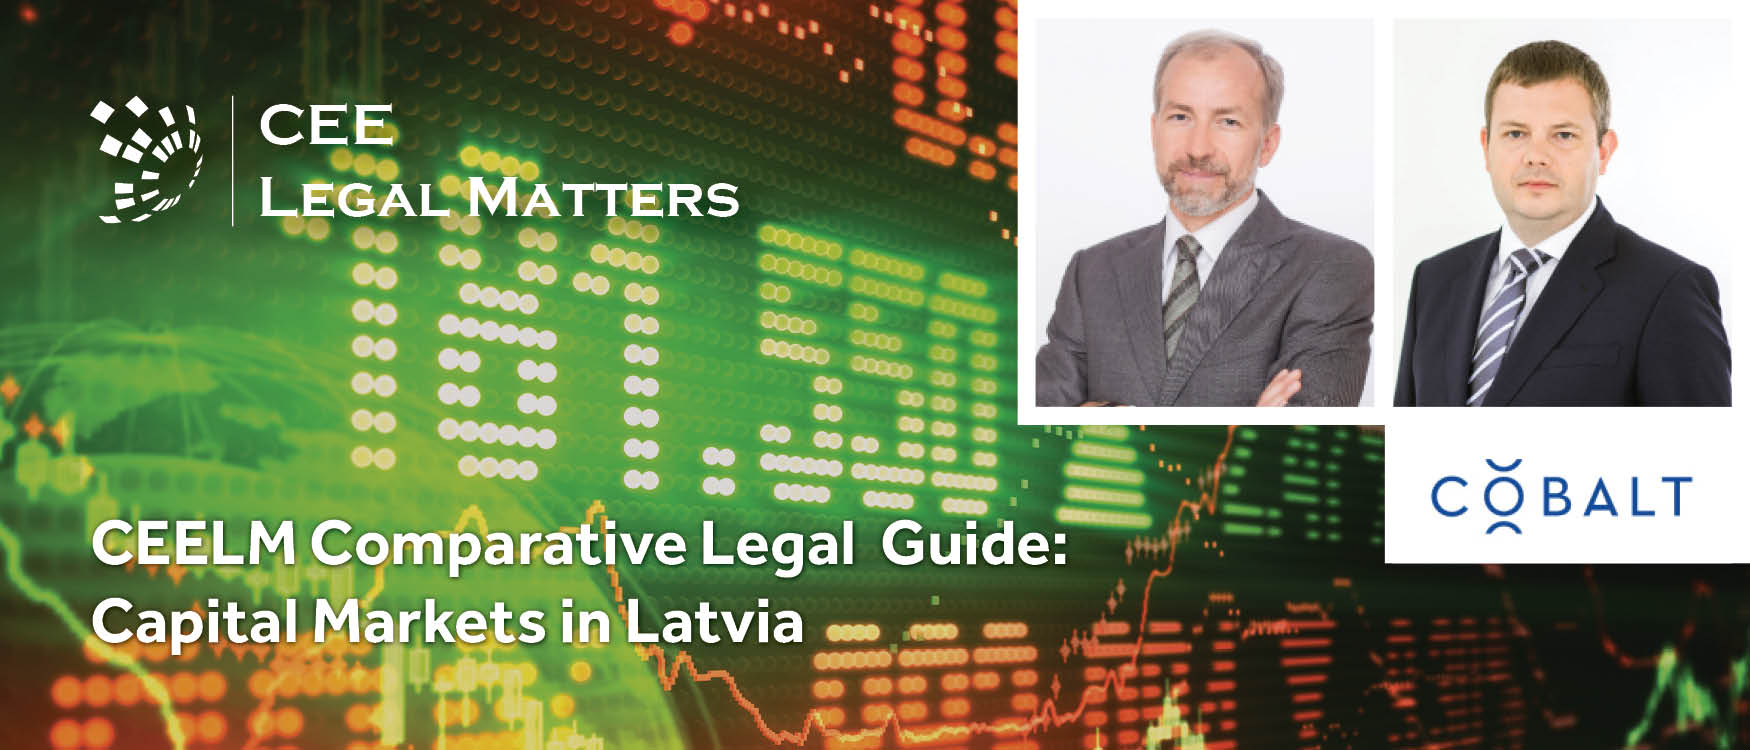 Capital Markets in Latvia